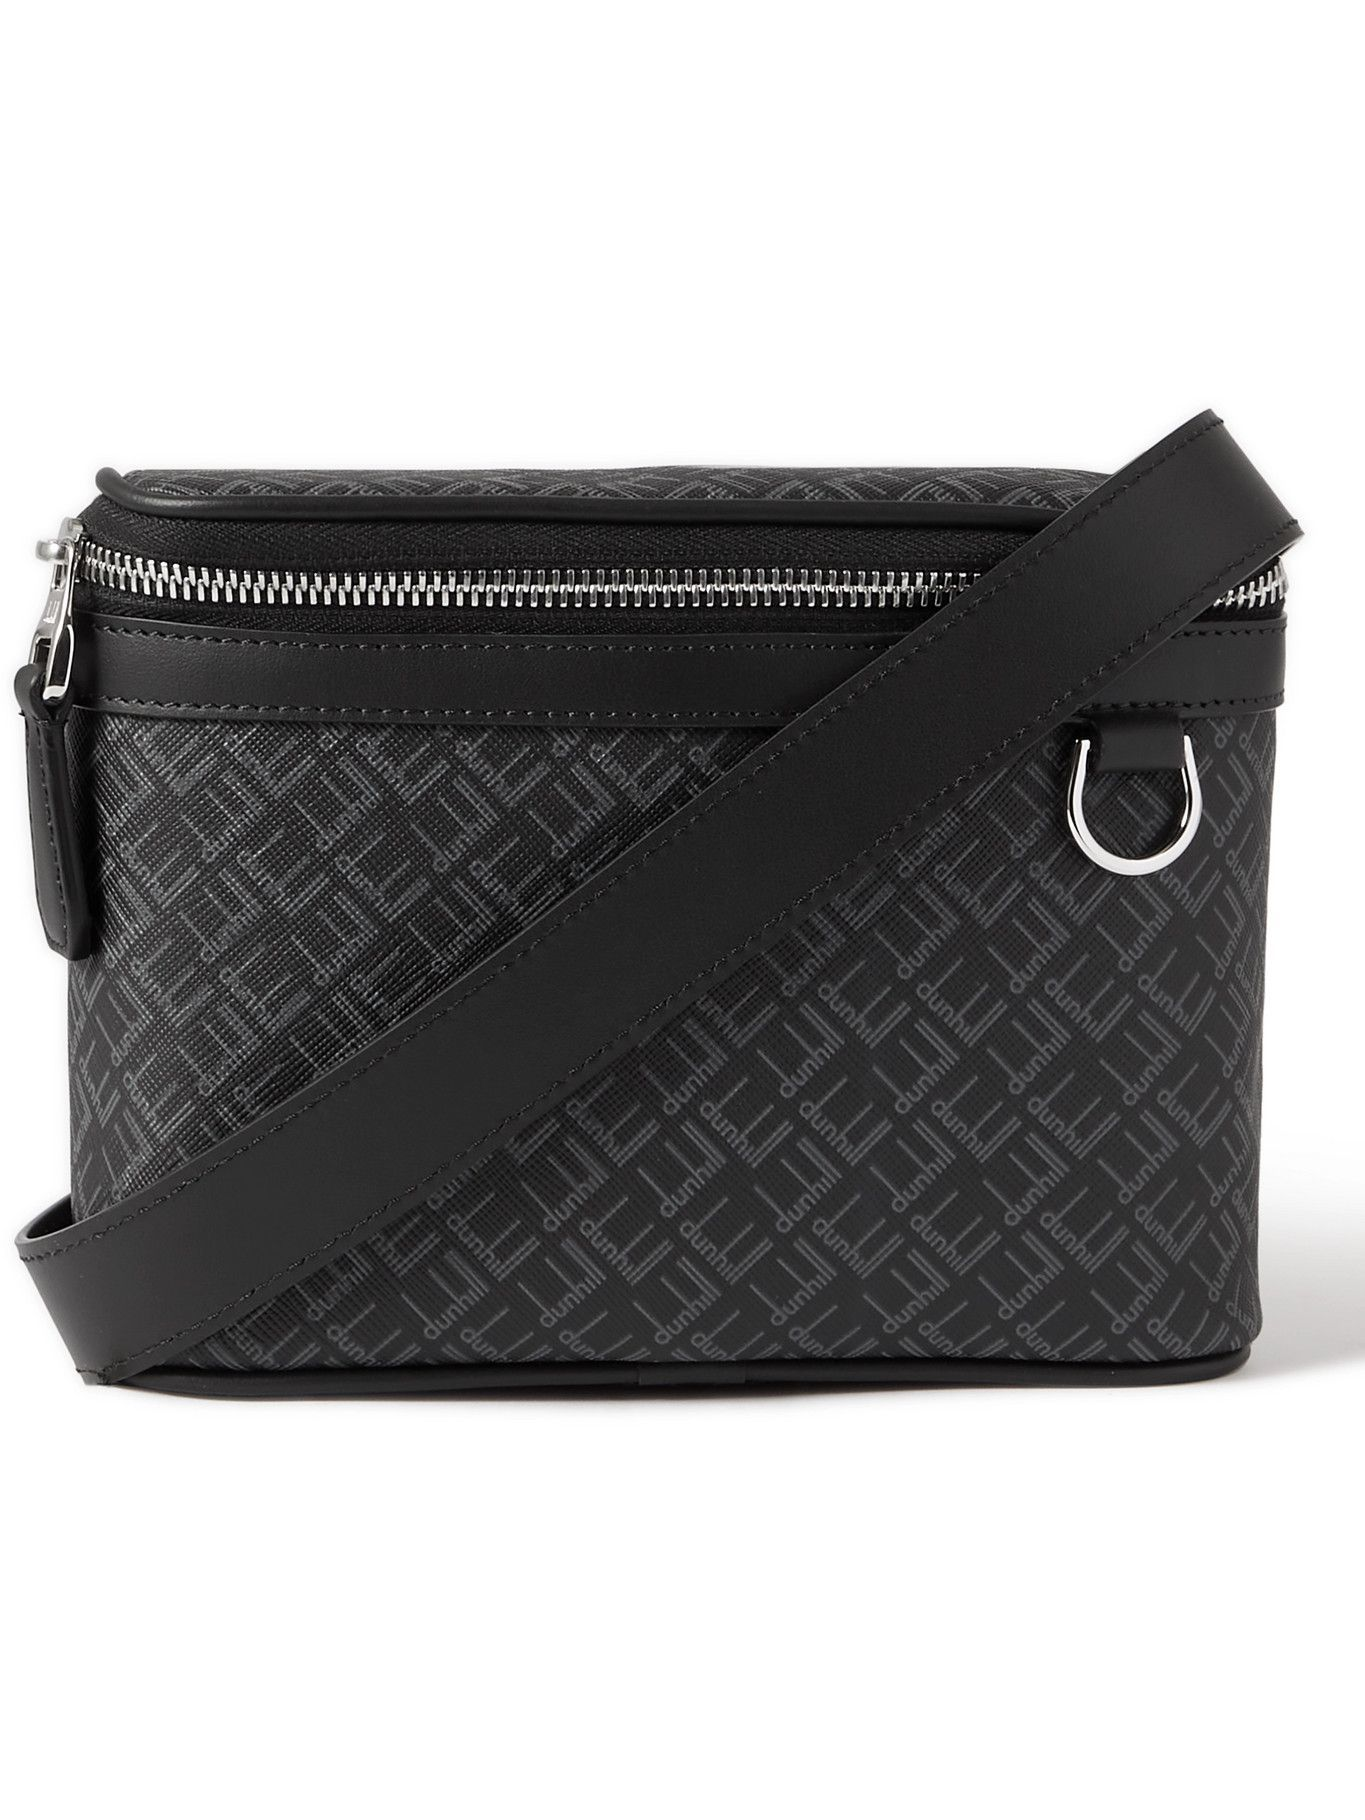 DUNHILL - Small Leather-Trimmed Logo-Print Coated-Canvas Messenger Bag